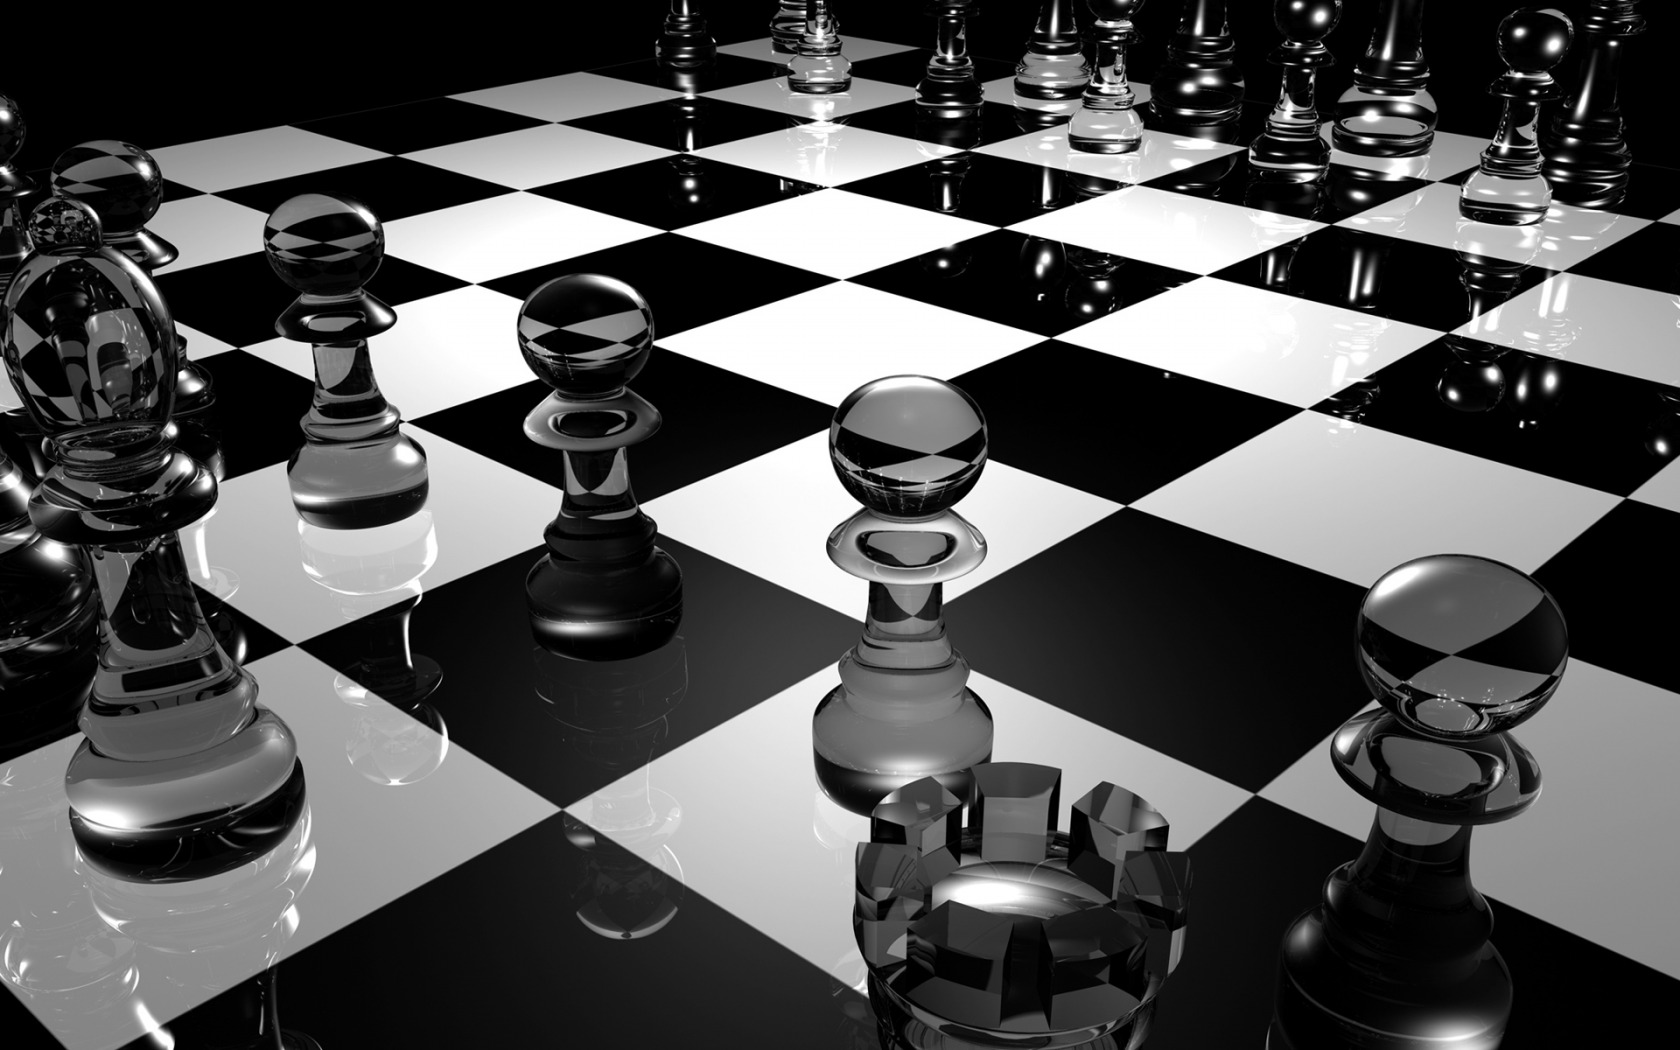 http://iw.wallpaperlist.com/3d-chess-board-wallpaper-2238.html